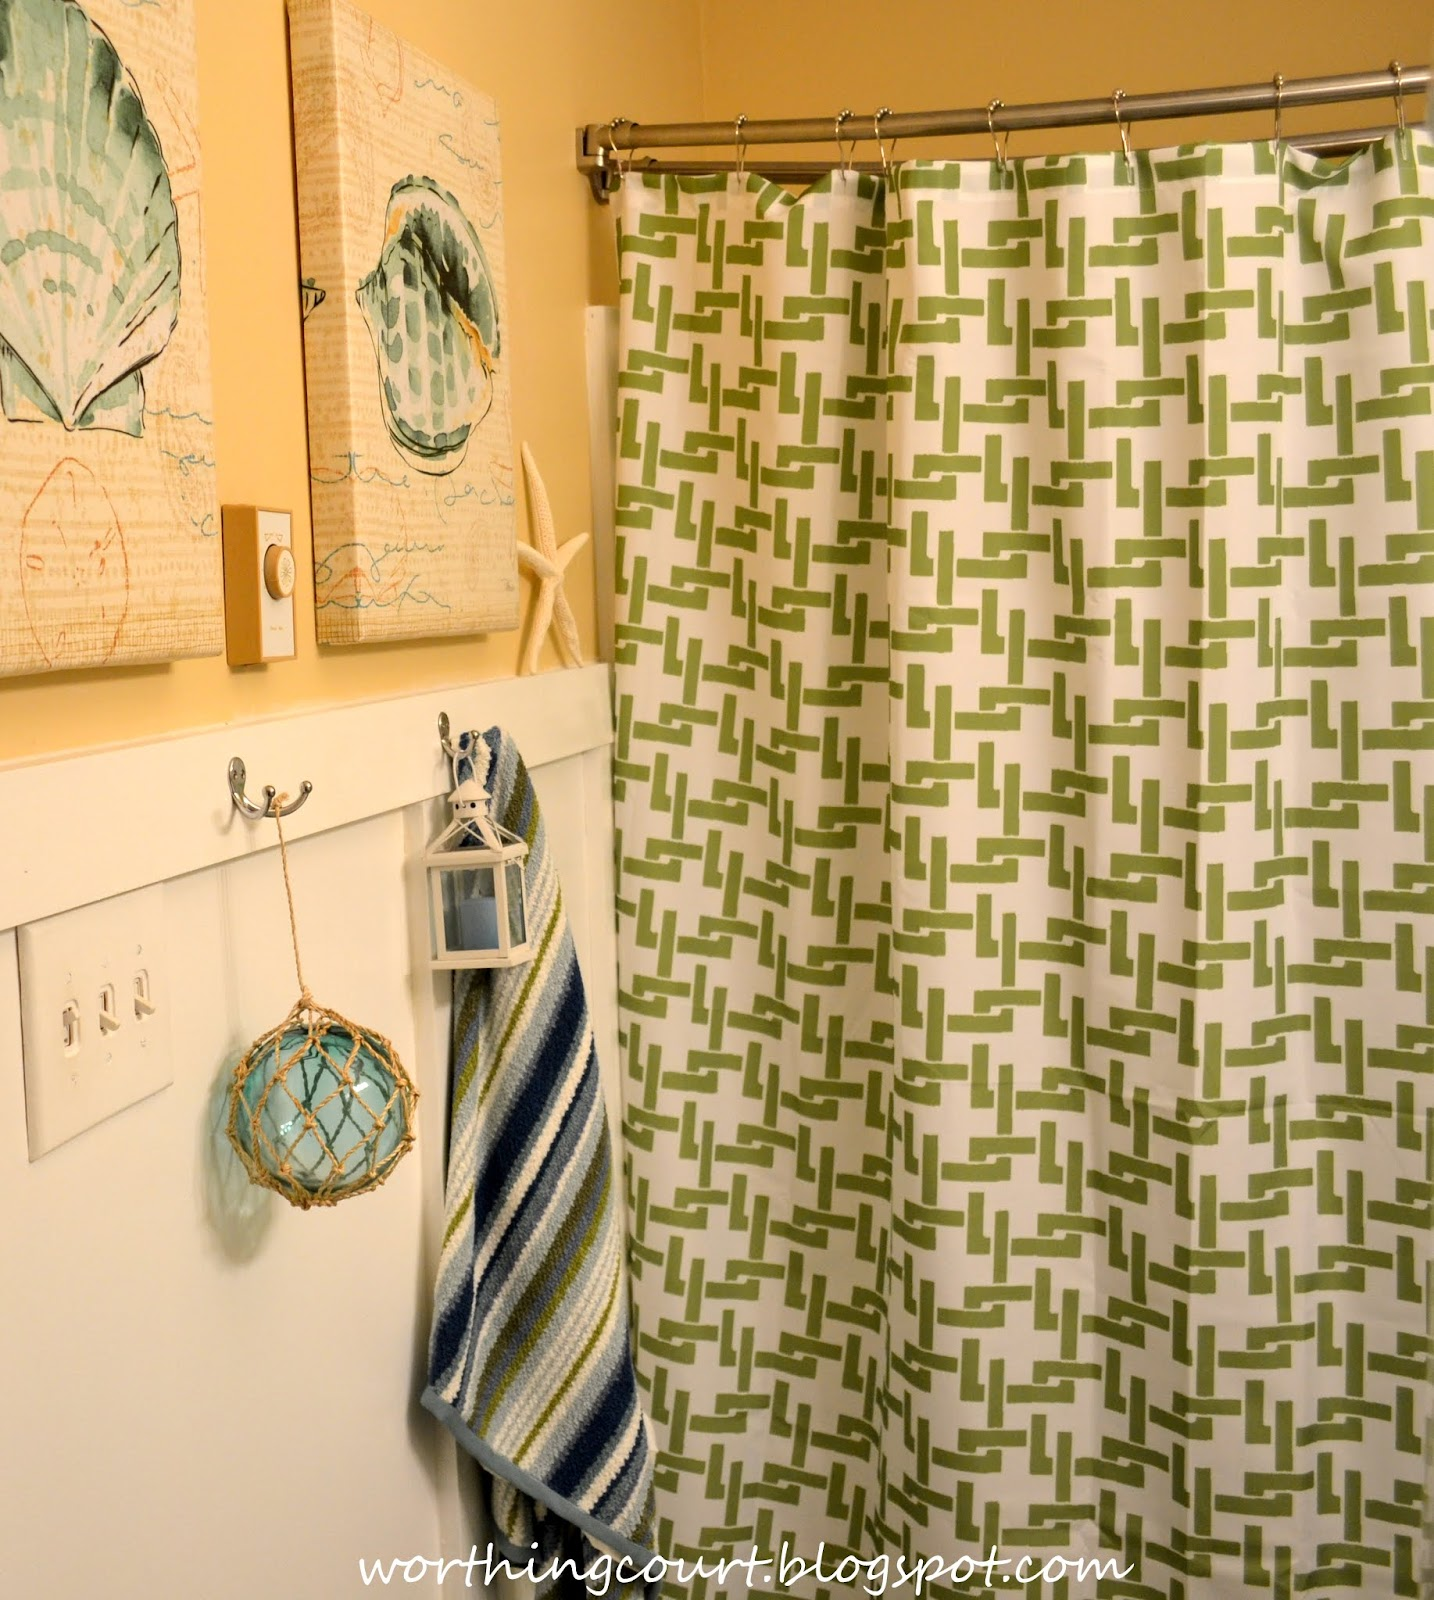 A Beachy Bathroom | Worthing Court